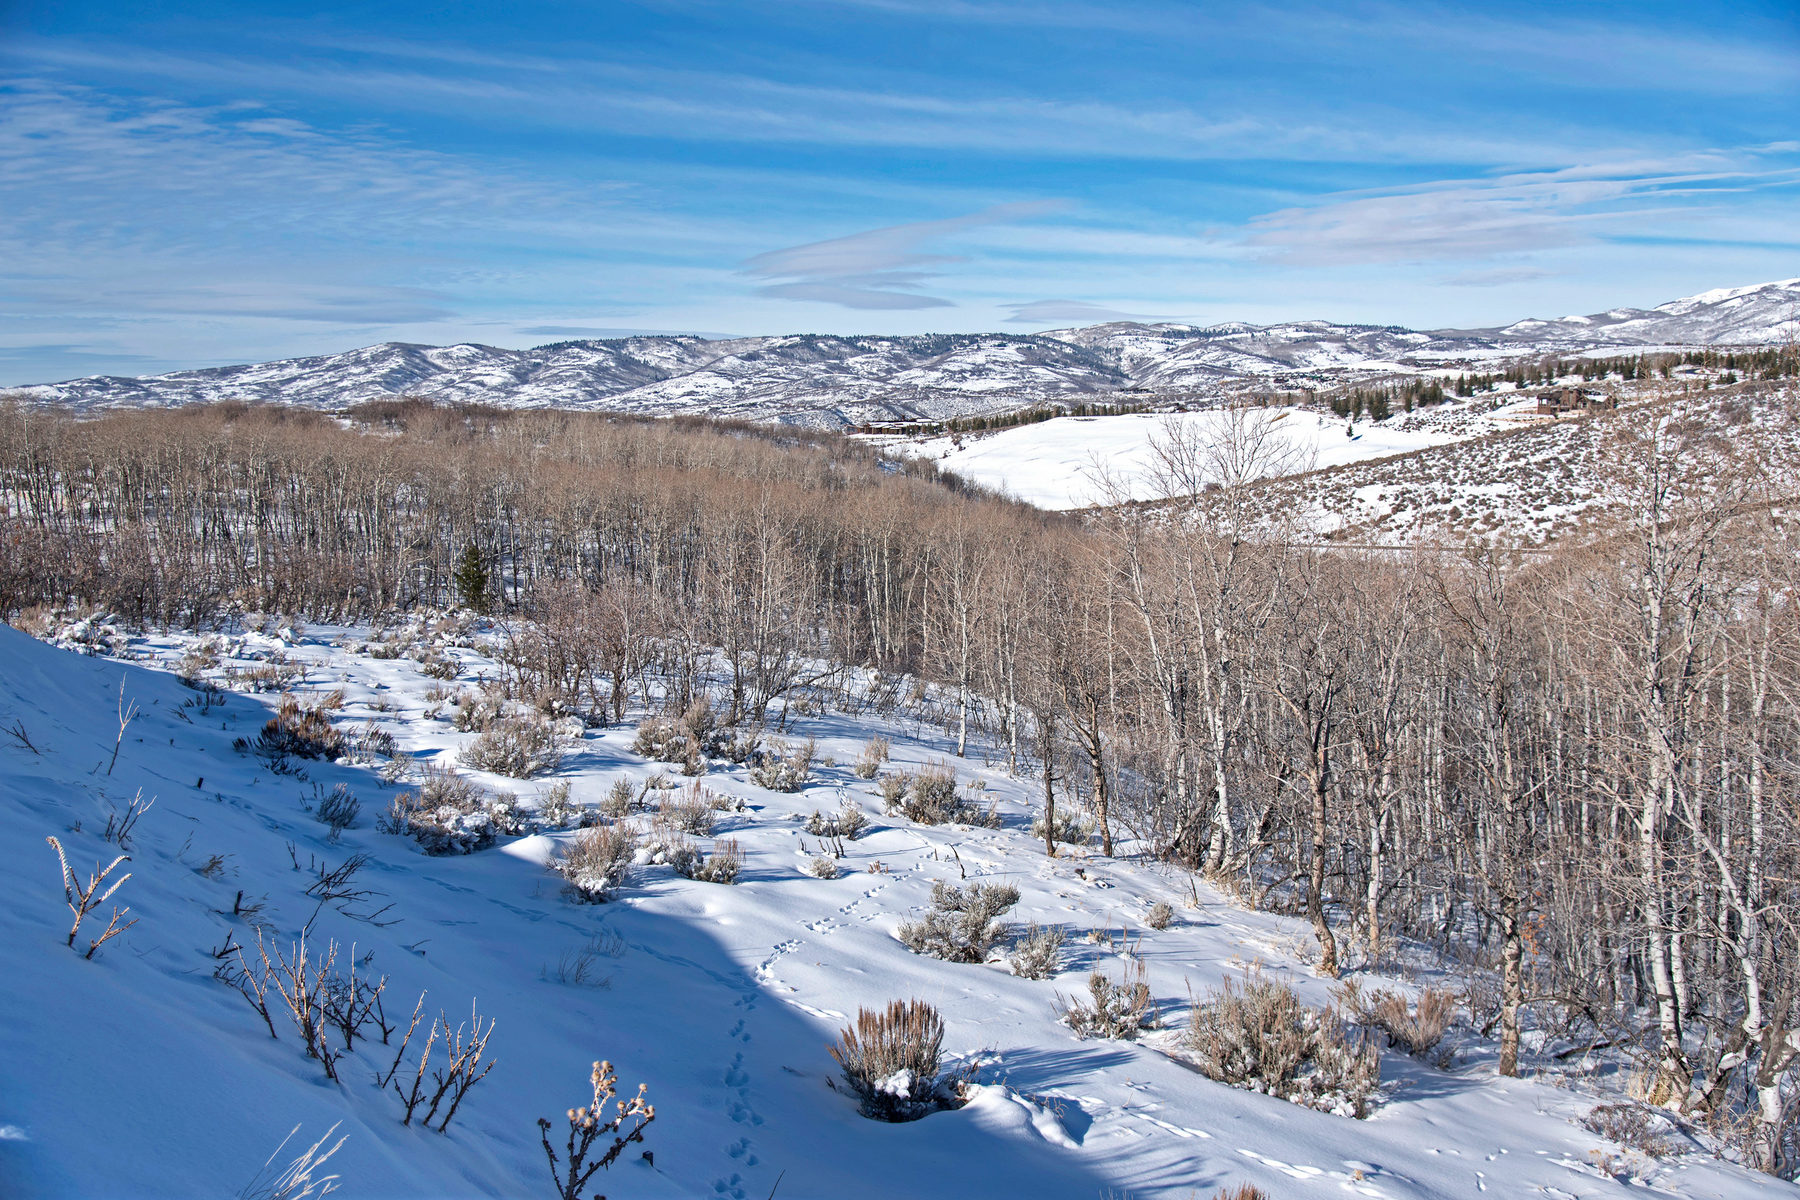 Land for Sale at Beautiful Promontory Home Site Among The Aspens 7645 N Promontory Ranch Rd Lot 11 Park City, Utah, 84098 United States